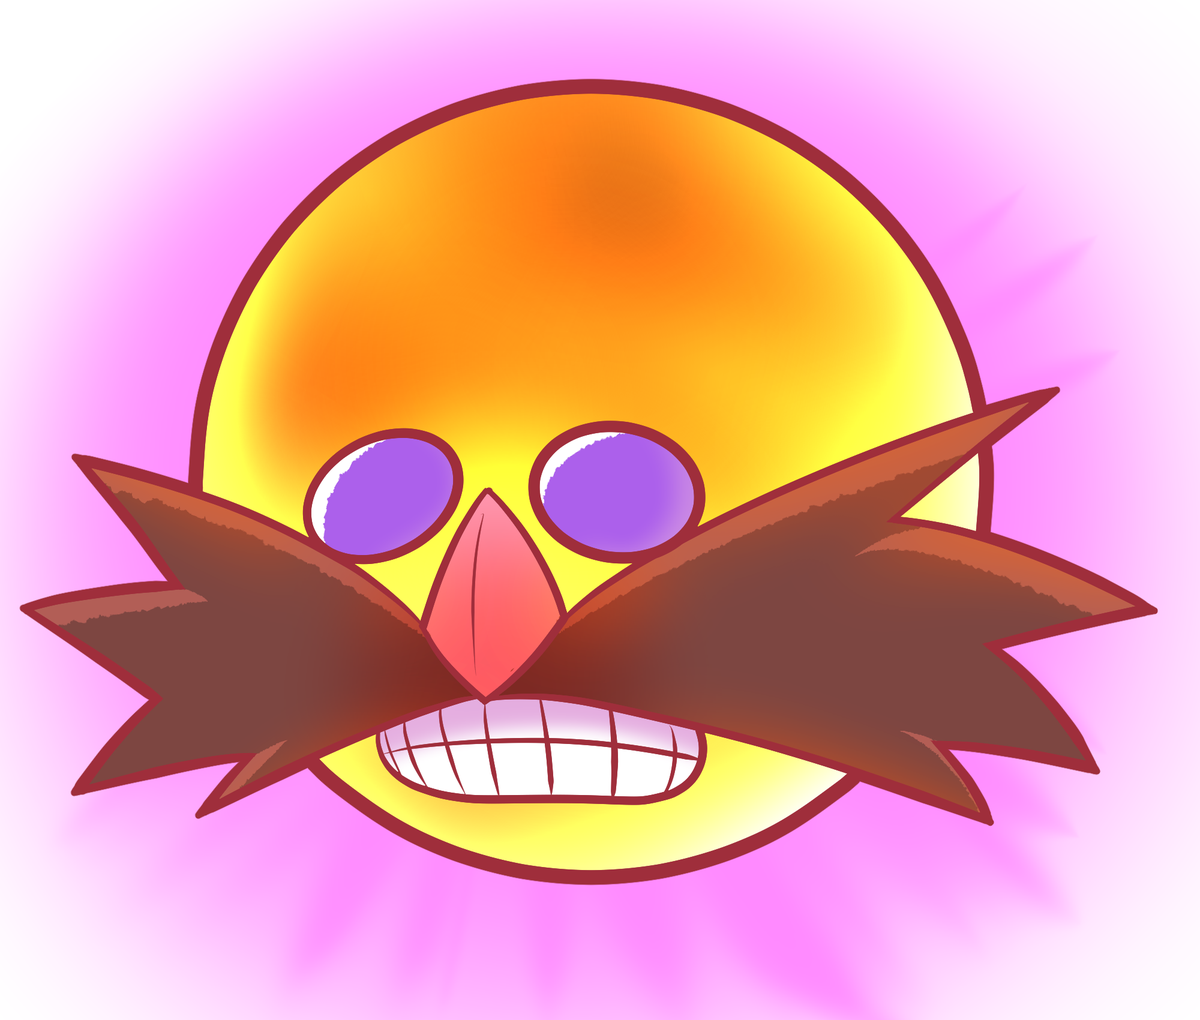 Was watching the most recent episode of @GameGrumps playing Sonic Shuffle and had to draw these.  Matching icons of that weird Eggman sun for you and your friend...? https://t.co/98kHoTdjFY